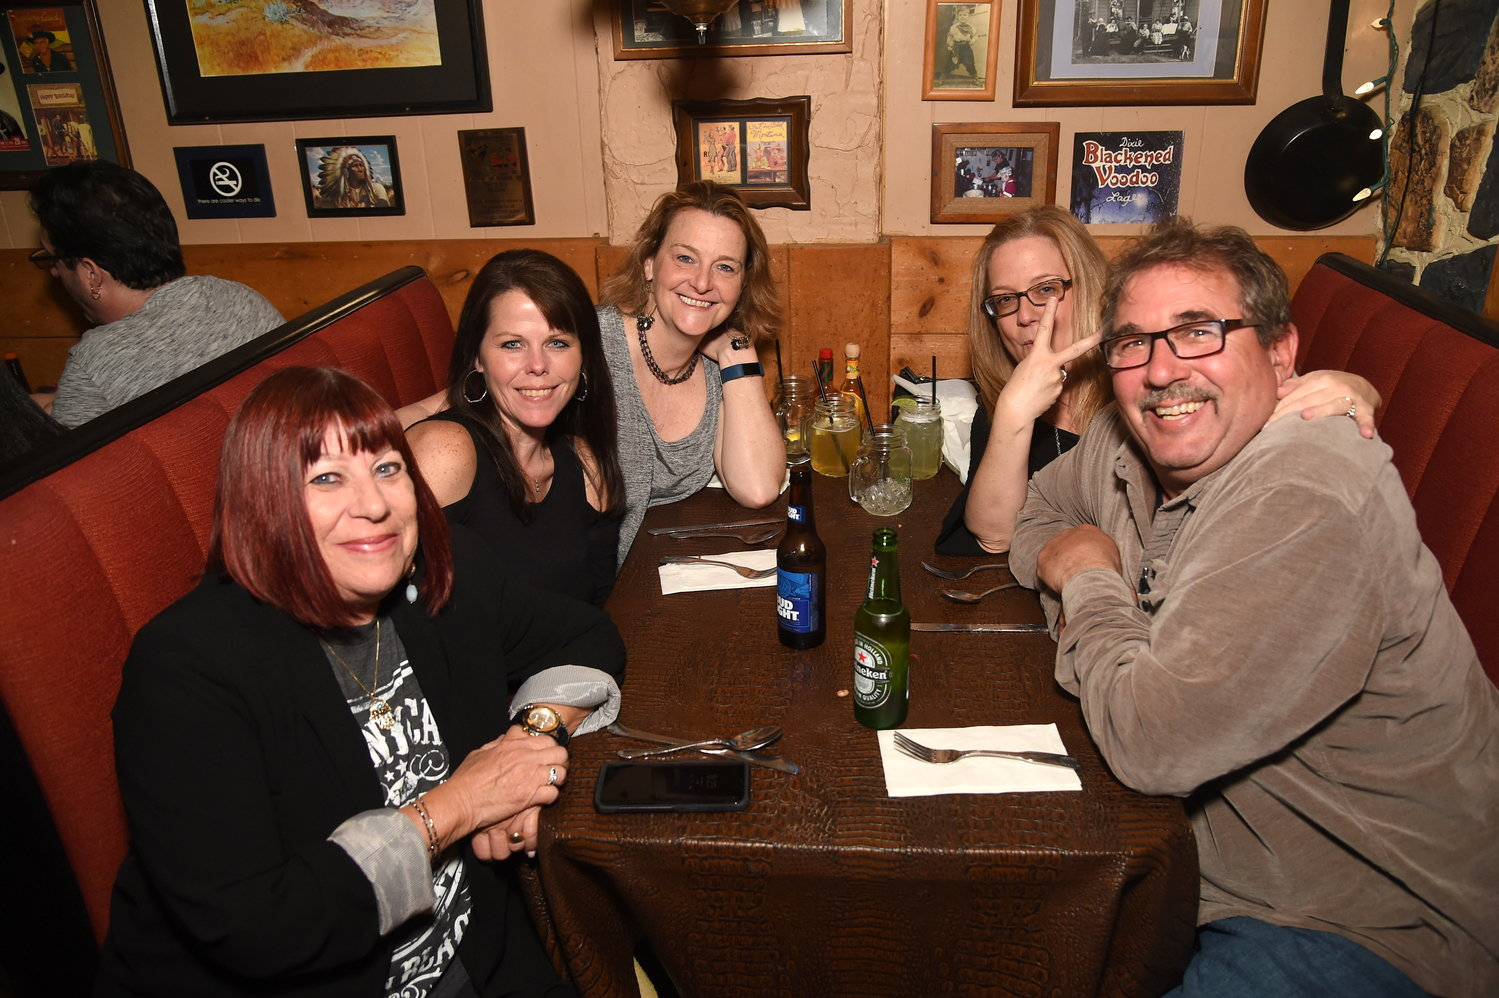 Twenty-year R.S. Jones regulars Robin Atlast, left, of Oceanside; Trish Morzillo, of Merrick; Barbara Shine, of Massapequa Park; and Susan and Eric Halvorsen, of North Merrick.